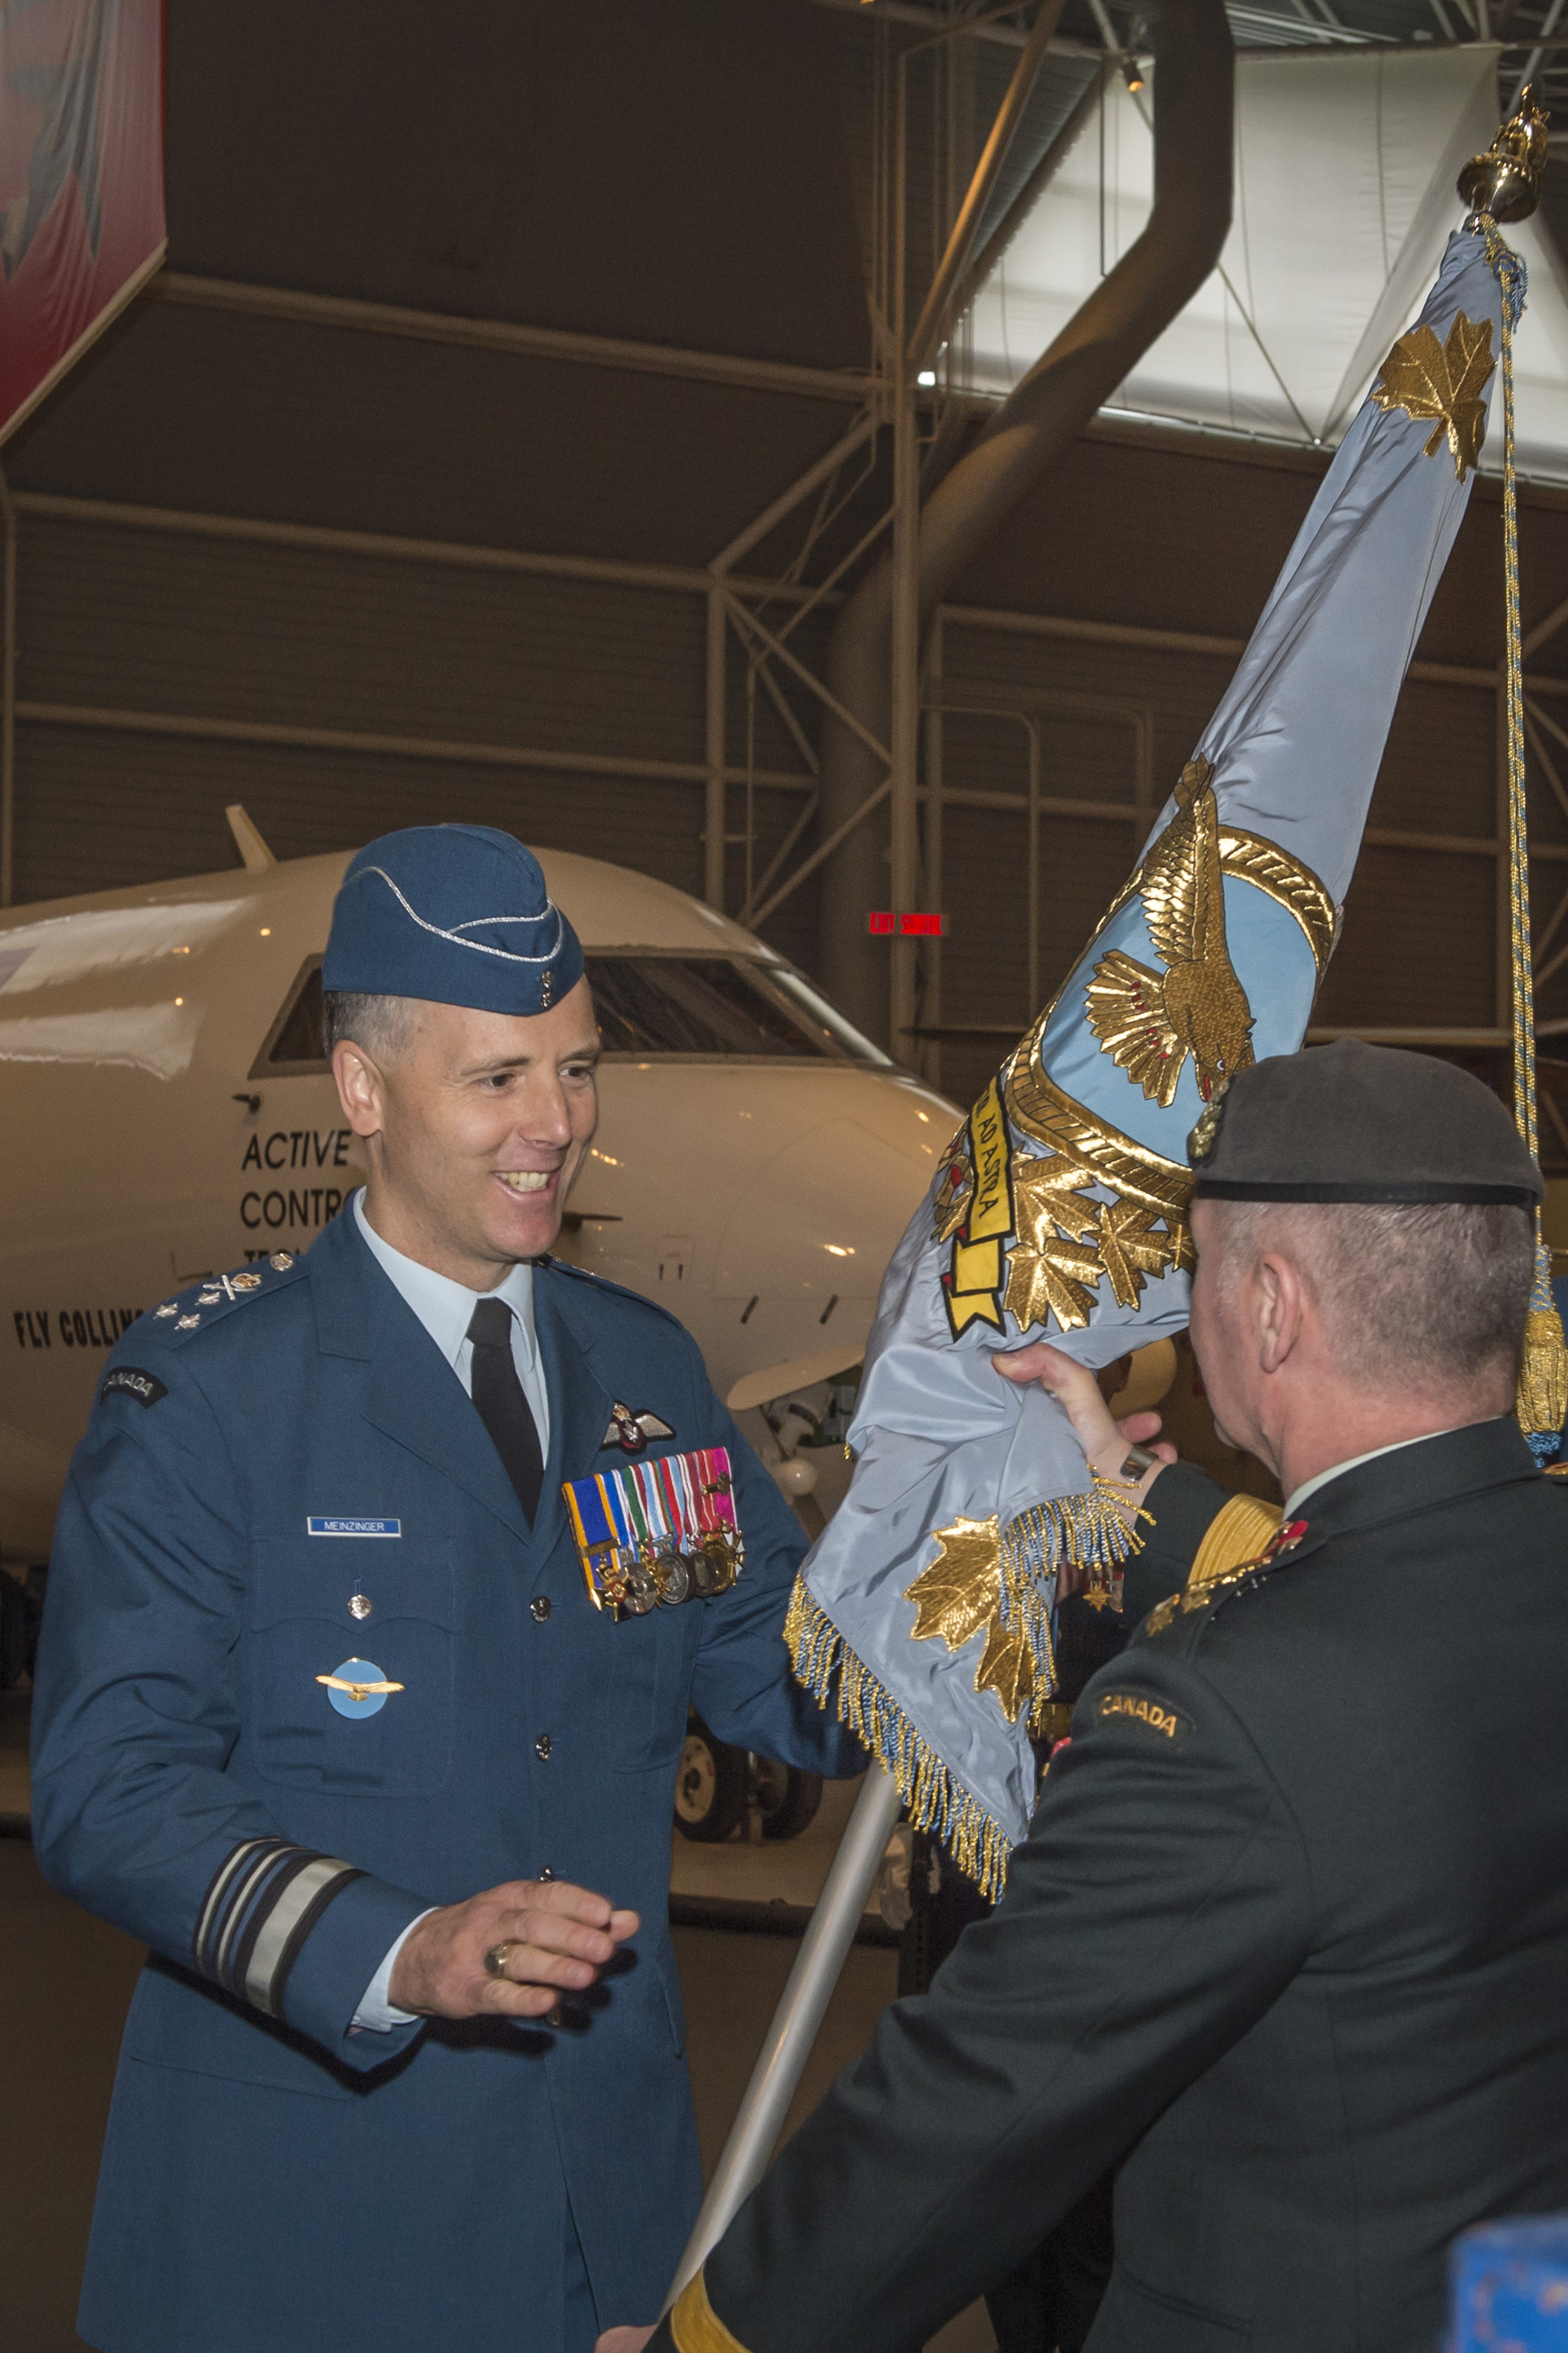 General Jonathan Vance, Chief of the Defence Staff, passes the Royal Canadian Air Force Colour (a special, consecrated flag) to the new commander of the RCAF, Lieutenant-General Al Meinzinger, thereby symbolizing the passing of command to Lieutenant-General Meinzinger. PHOTO: Corporal Alana Morin, FA03-2018-0040-001